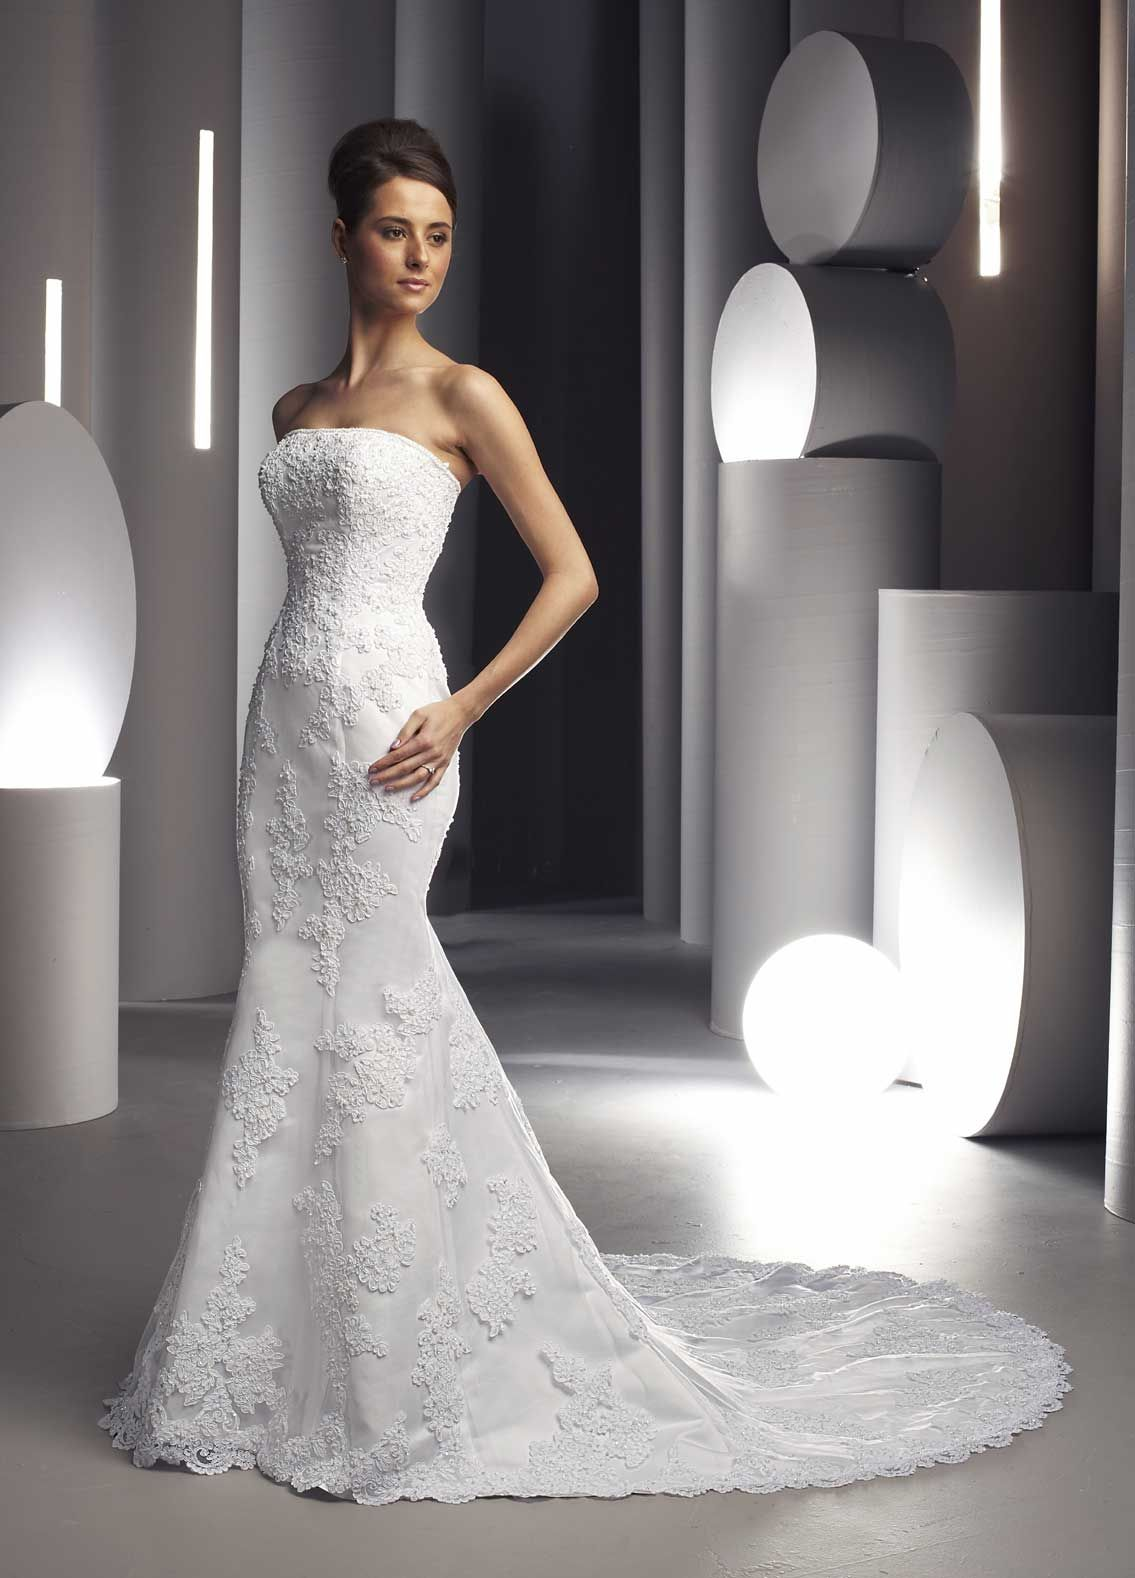 Aimee 73 Strapless Lace Mermaid Wedding Gowns Under 300 Lace Over